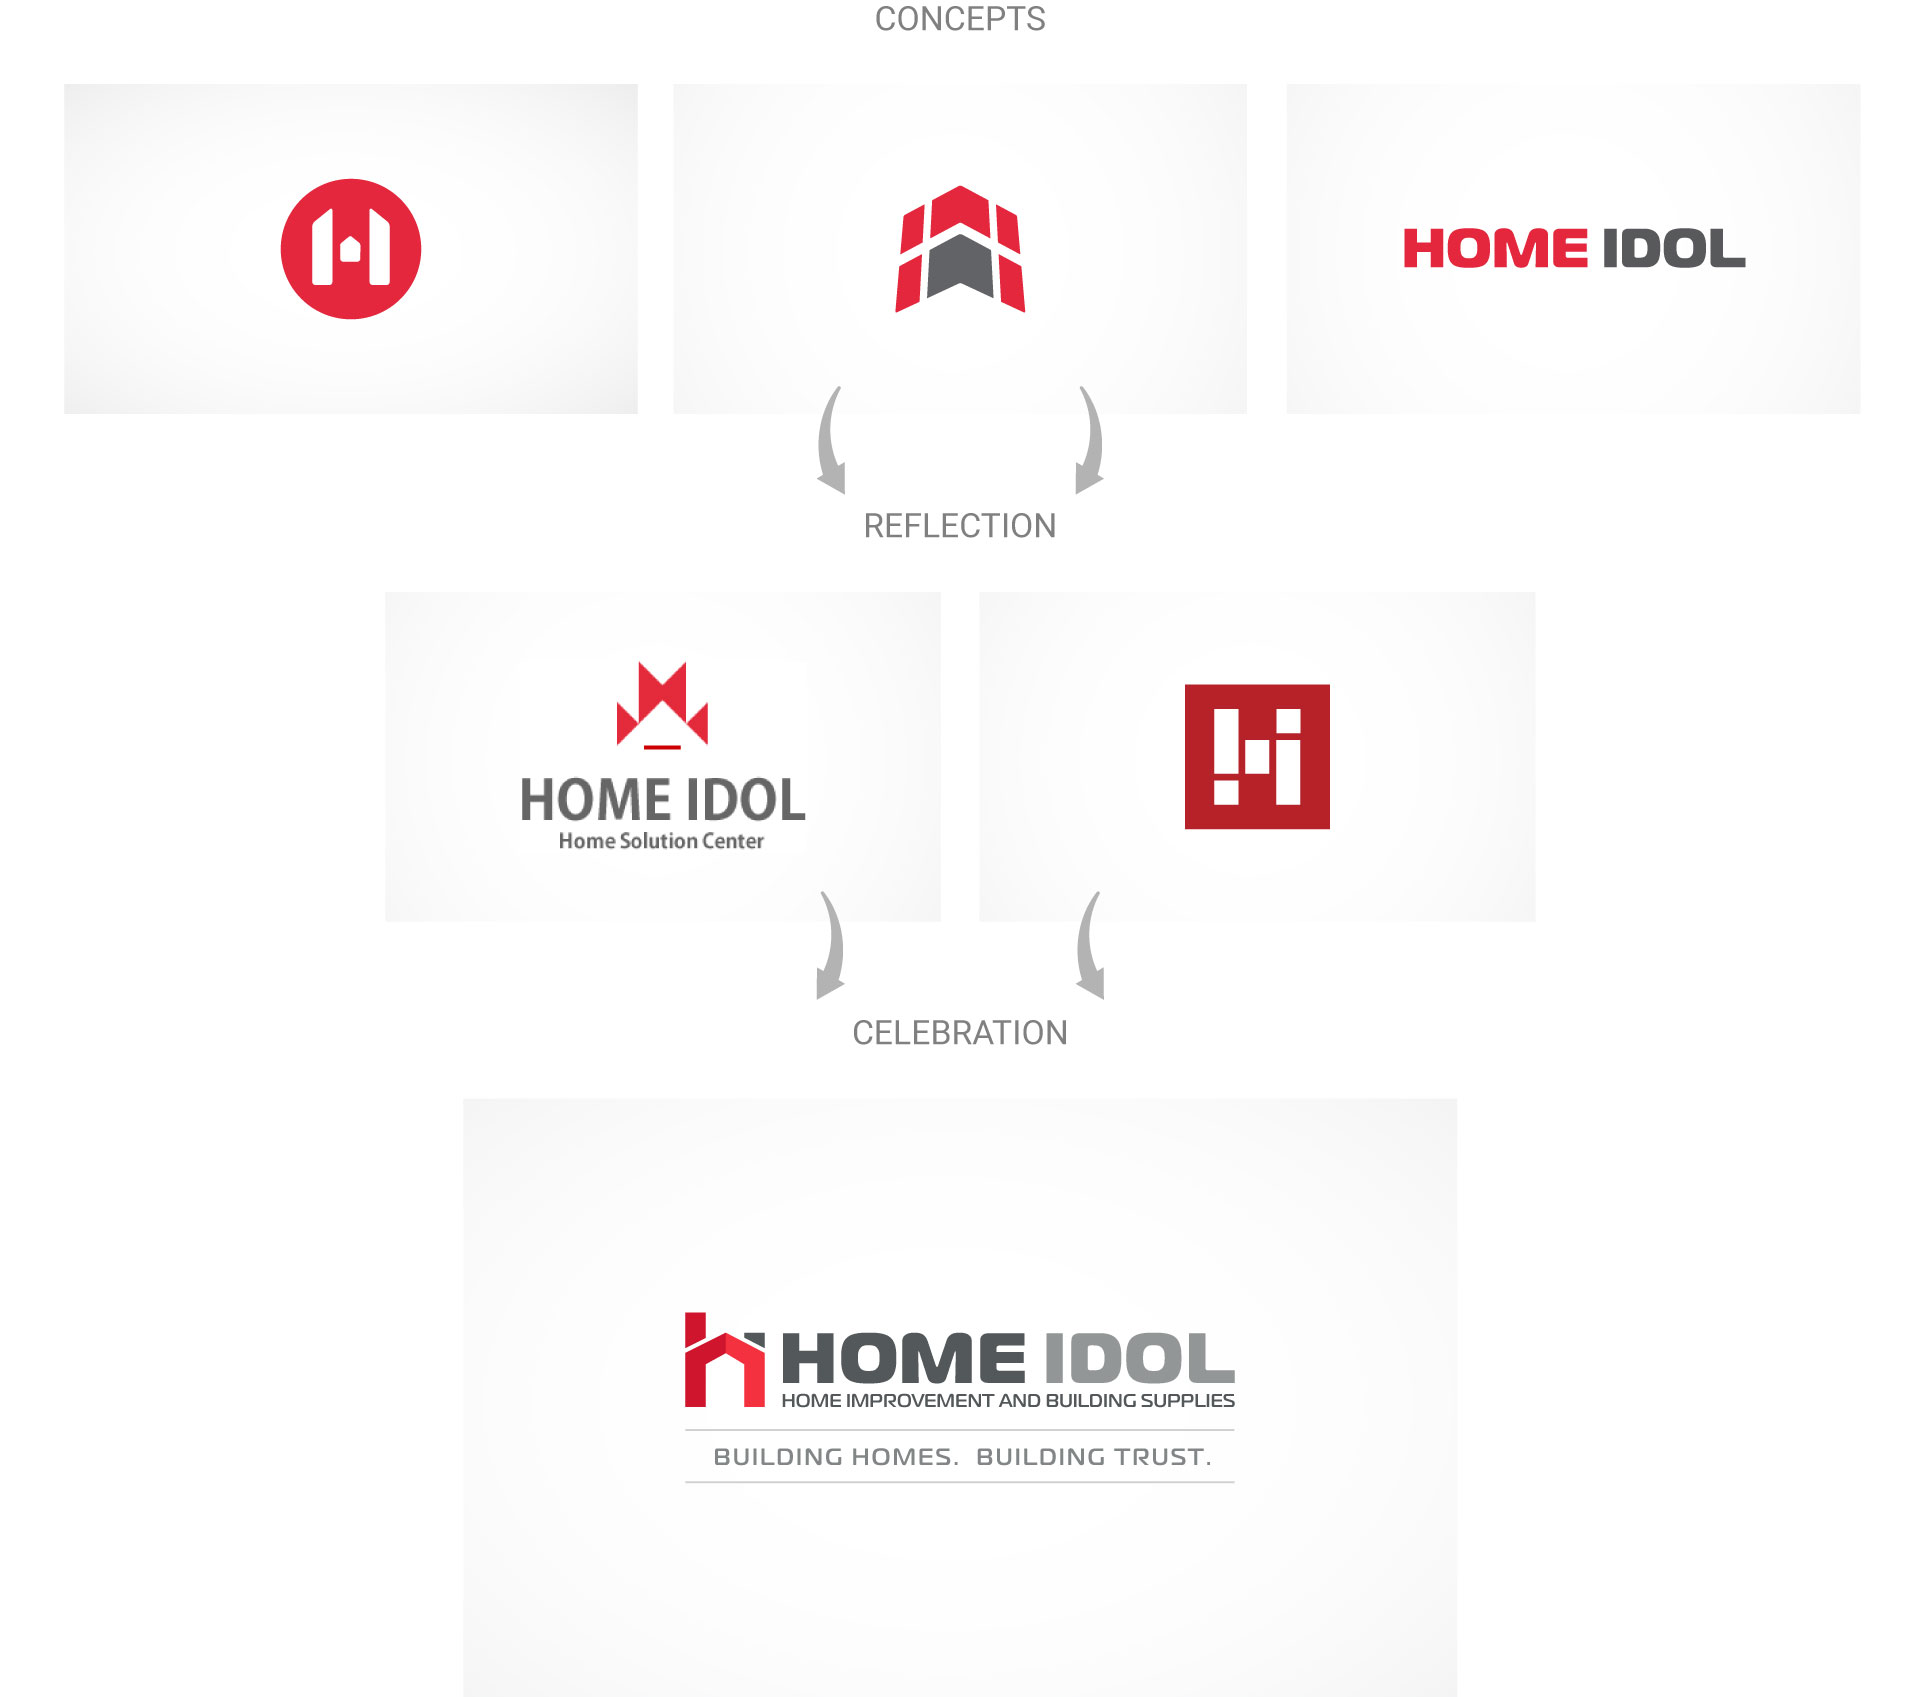 home-idol-logo-design-process-by-mapleweb-vancouver-canada